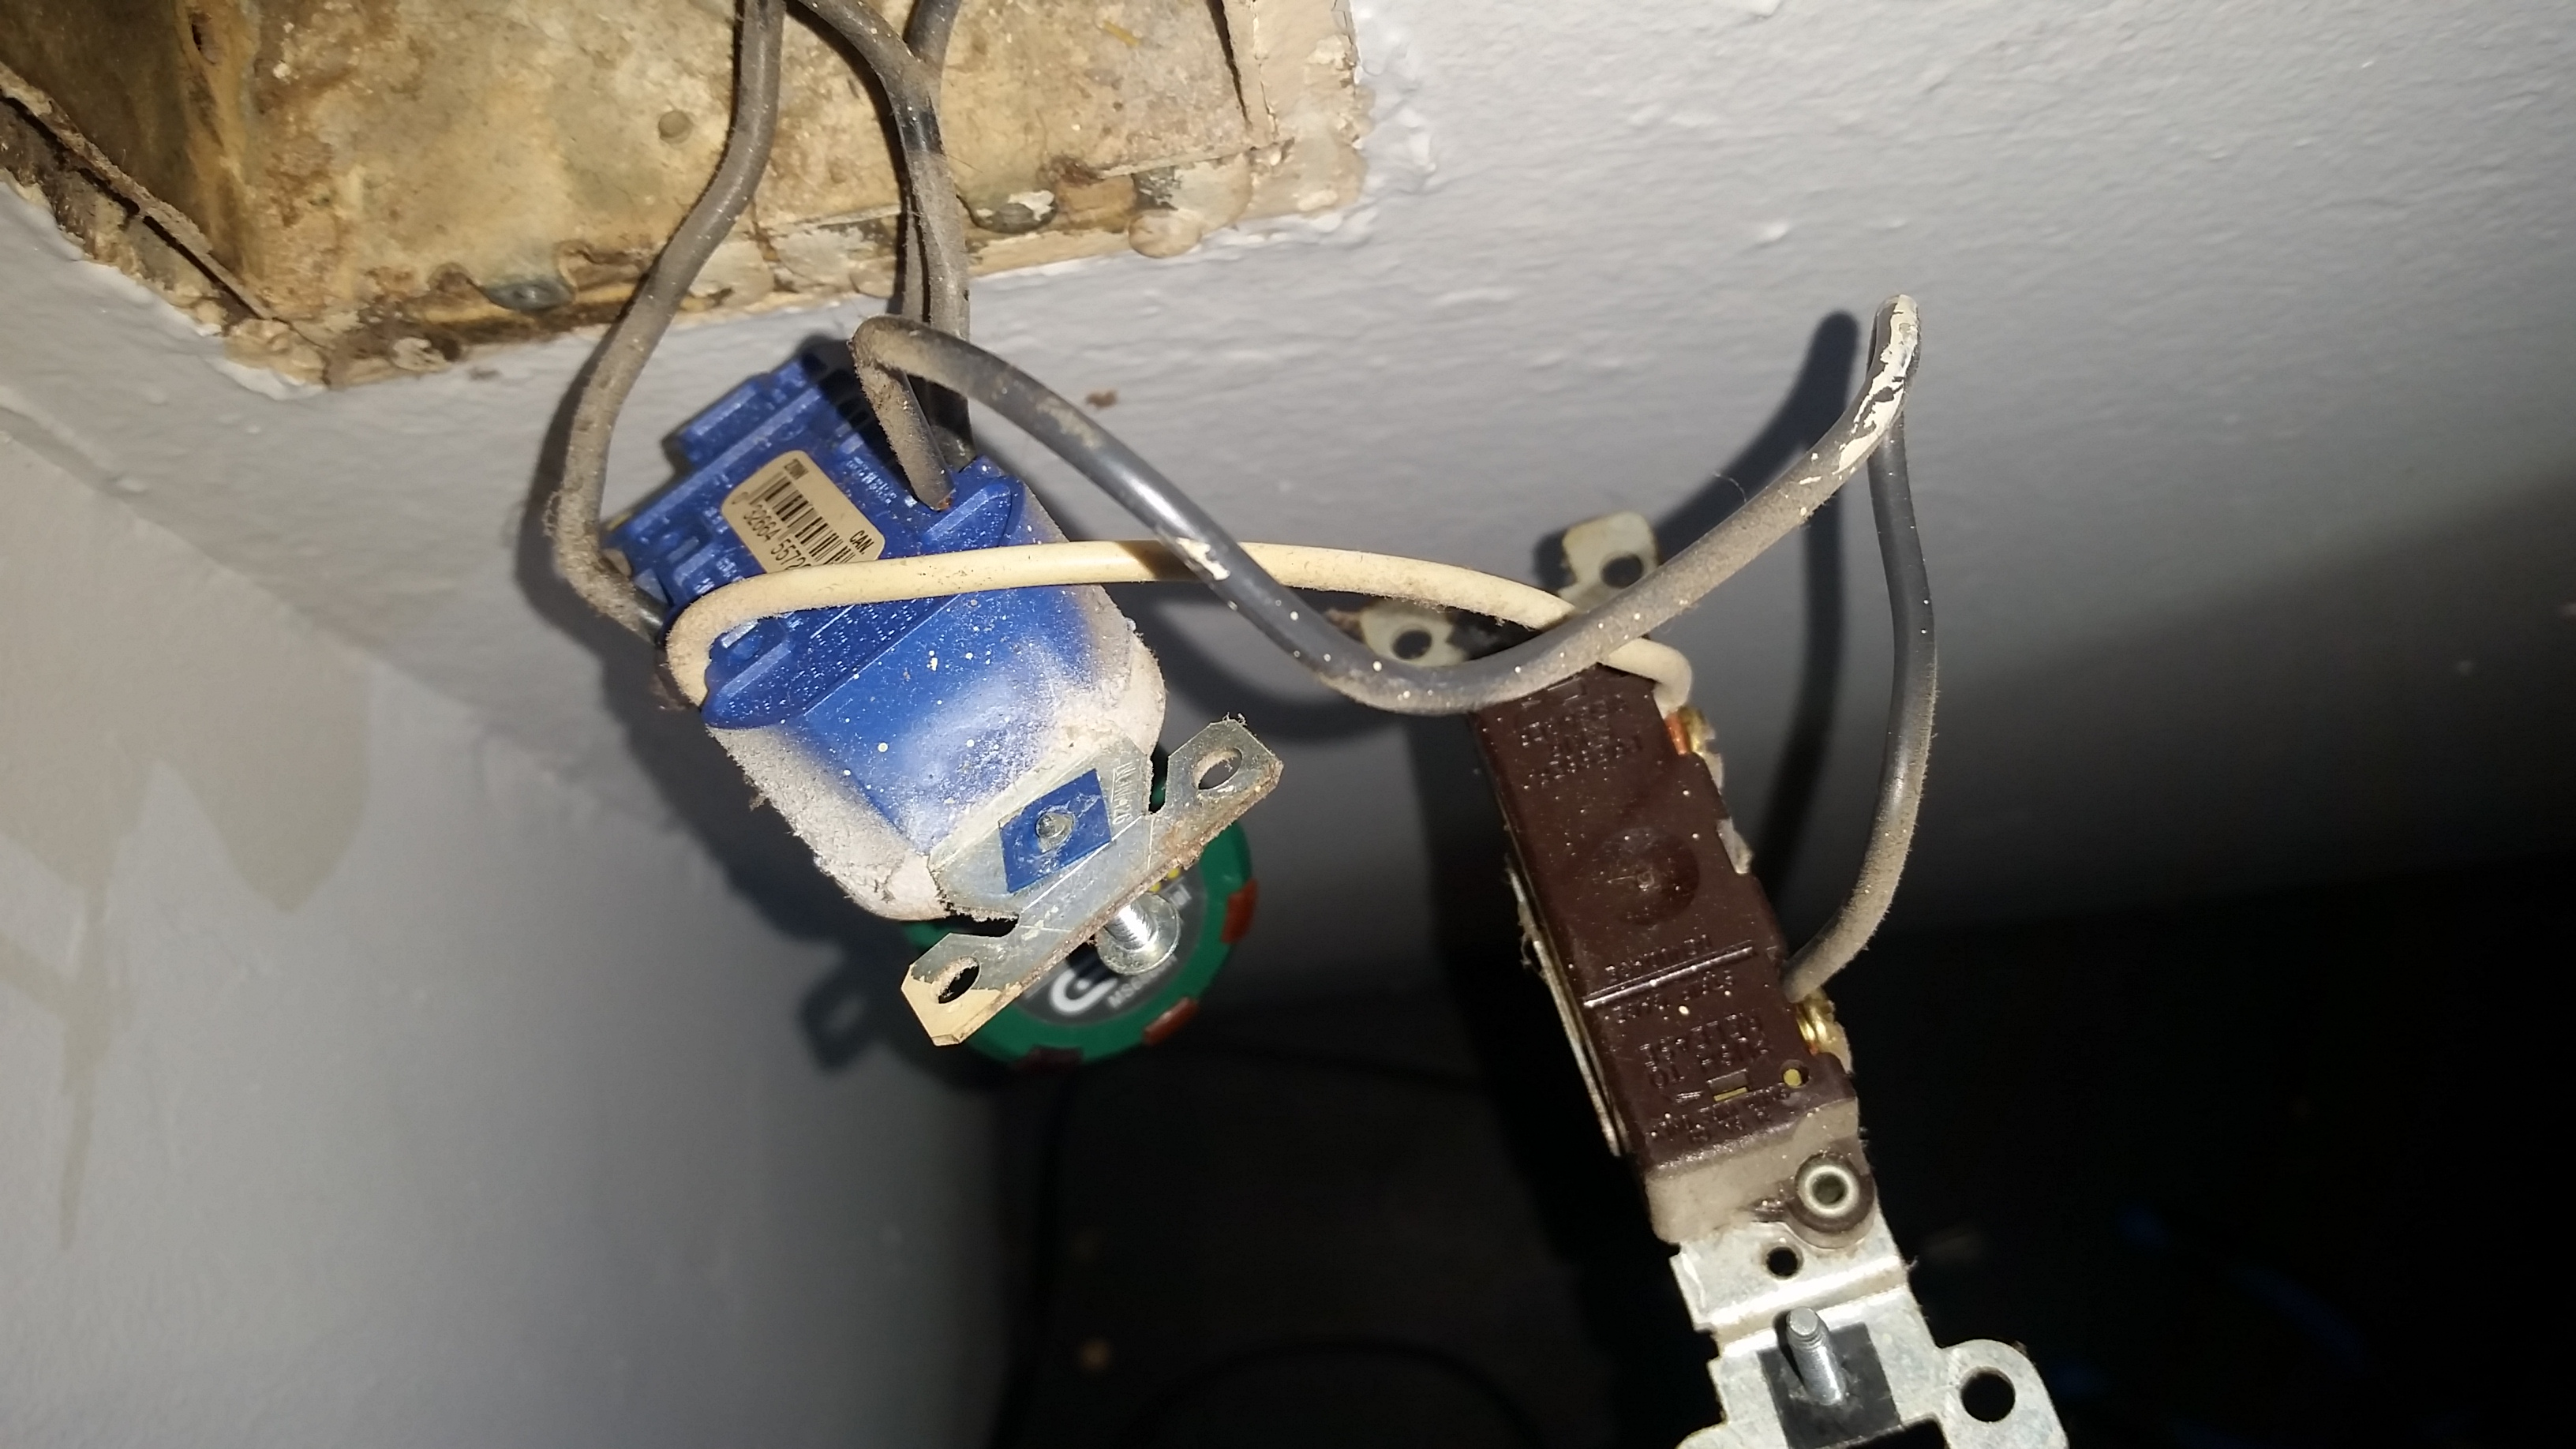 Funny Household Wiring Issue Insulating Lights Electrical Better Of 20160730 233555